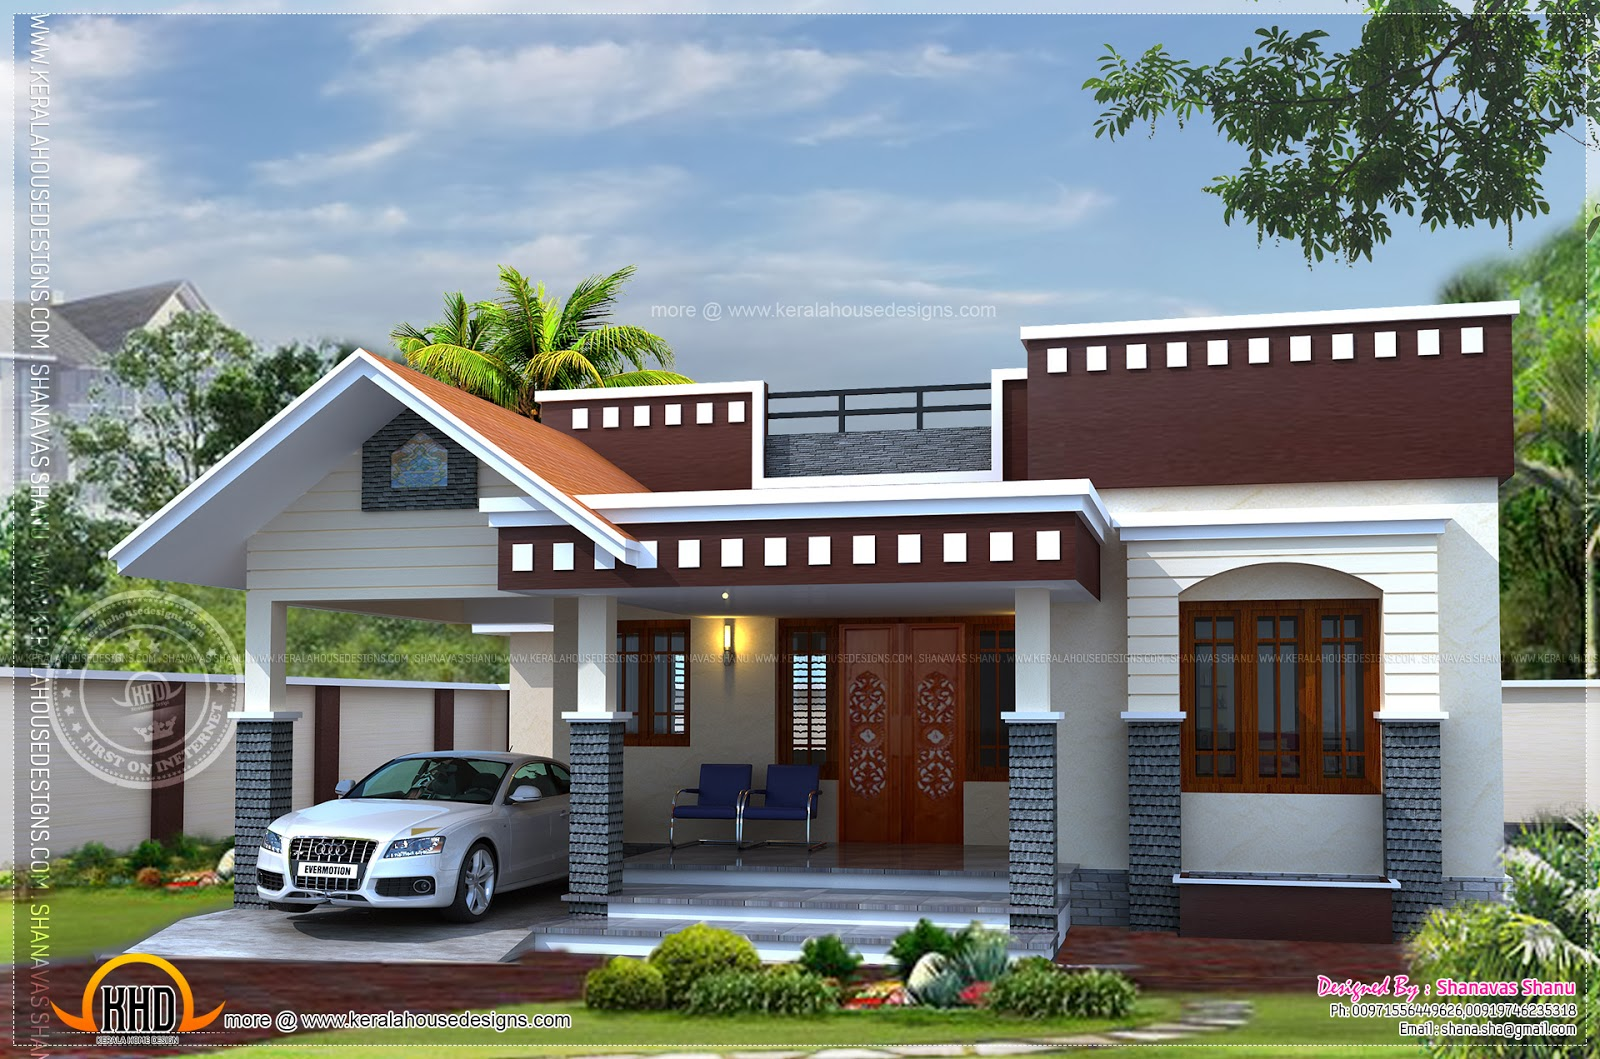 Home plan of small house kerala home design and floor plans Simple house designs indian style